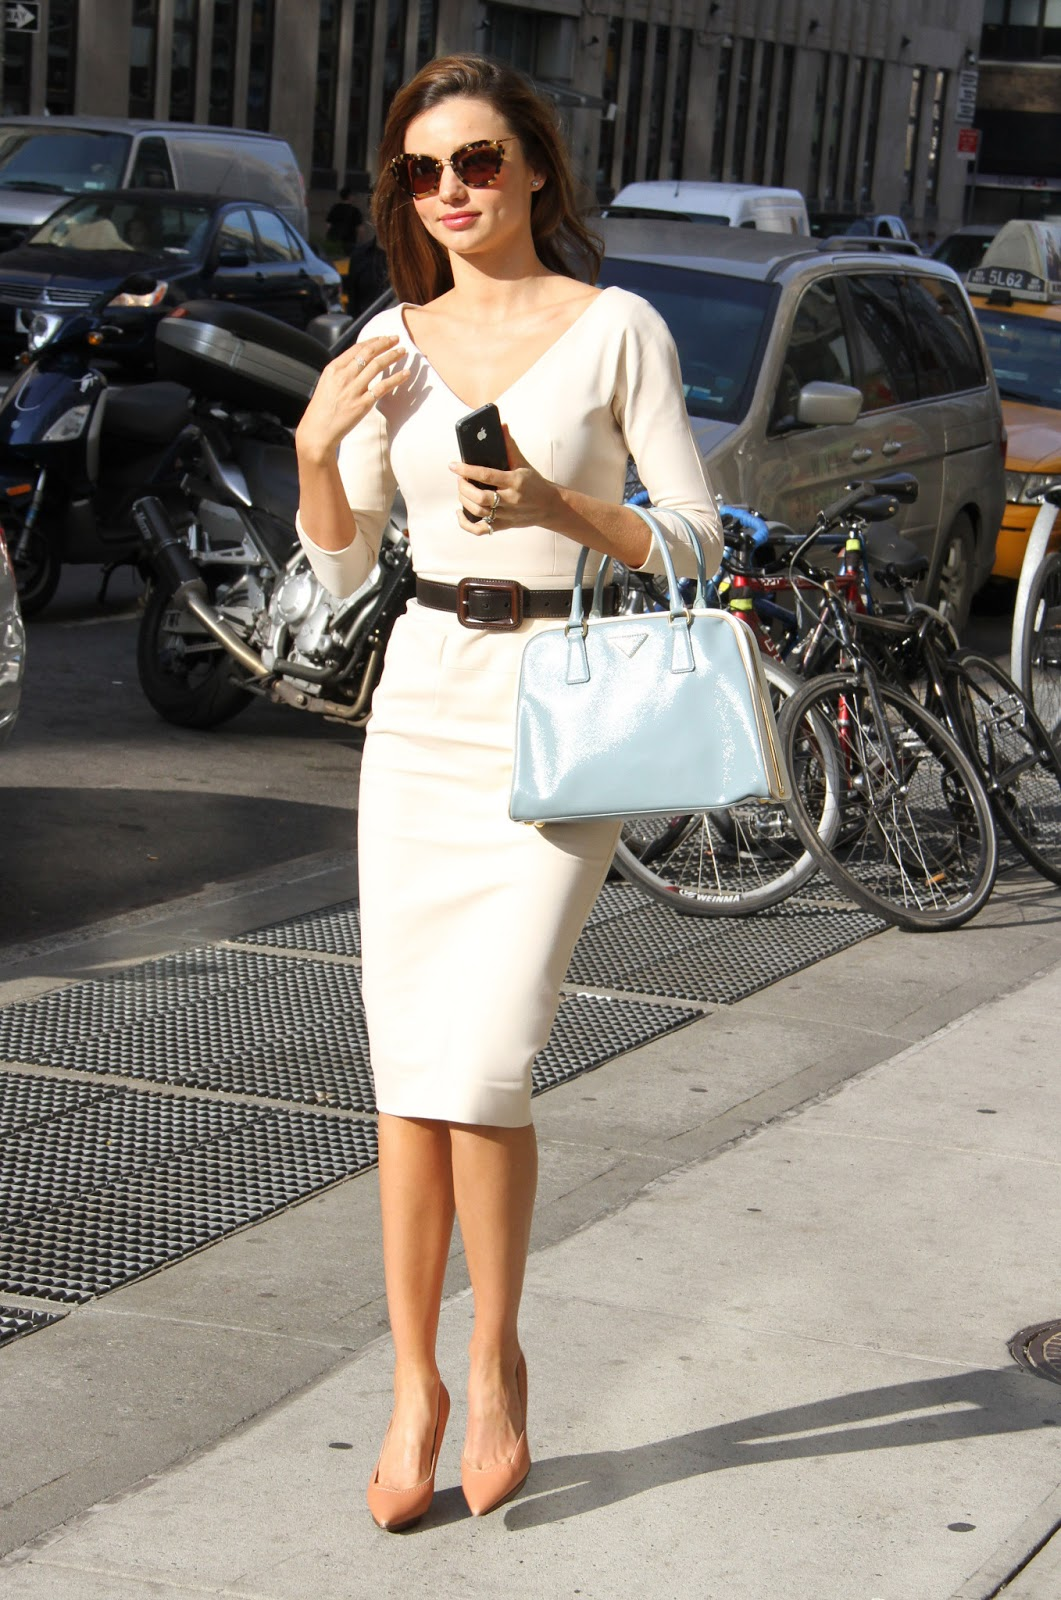 http://2.bp.blogspot.com/-uXwXkRk3JVk/UVNqSafn96I/AAAAAAAAbow/fSFLdeospAI/s1600/Miranda_Kerr_out_and_about_in_NYC_017_122_178lo.jpg